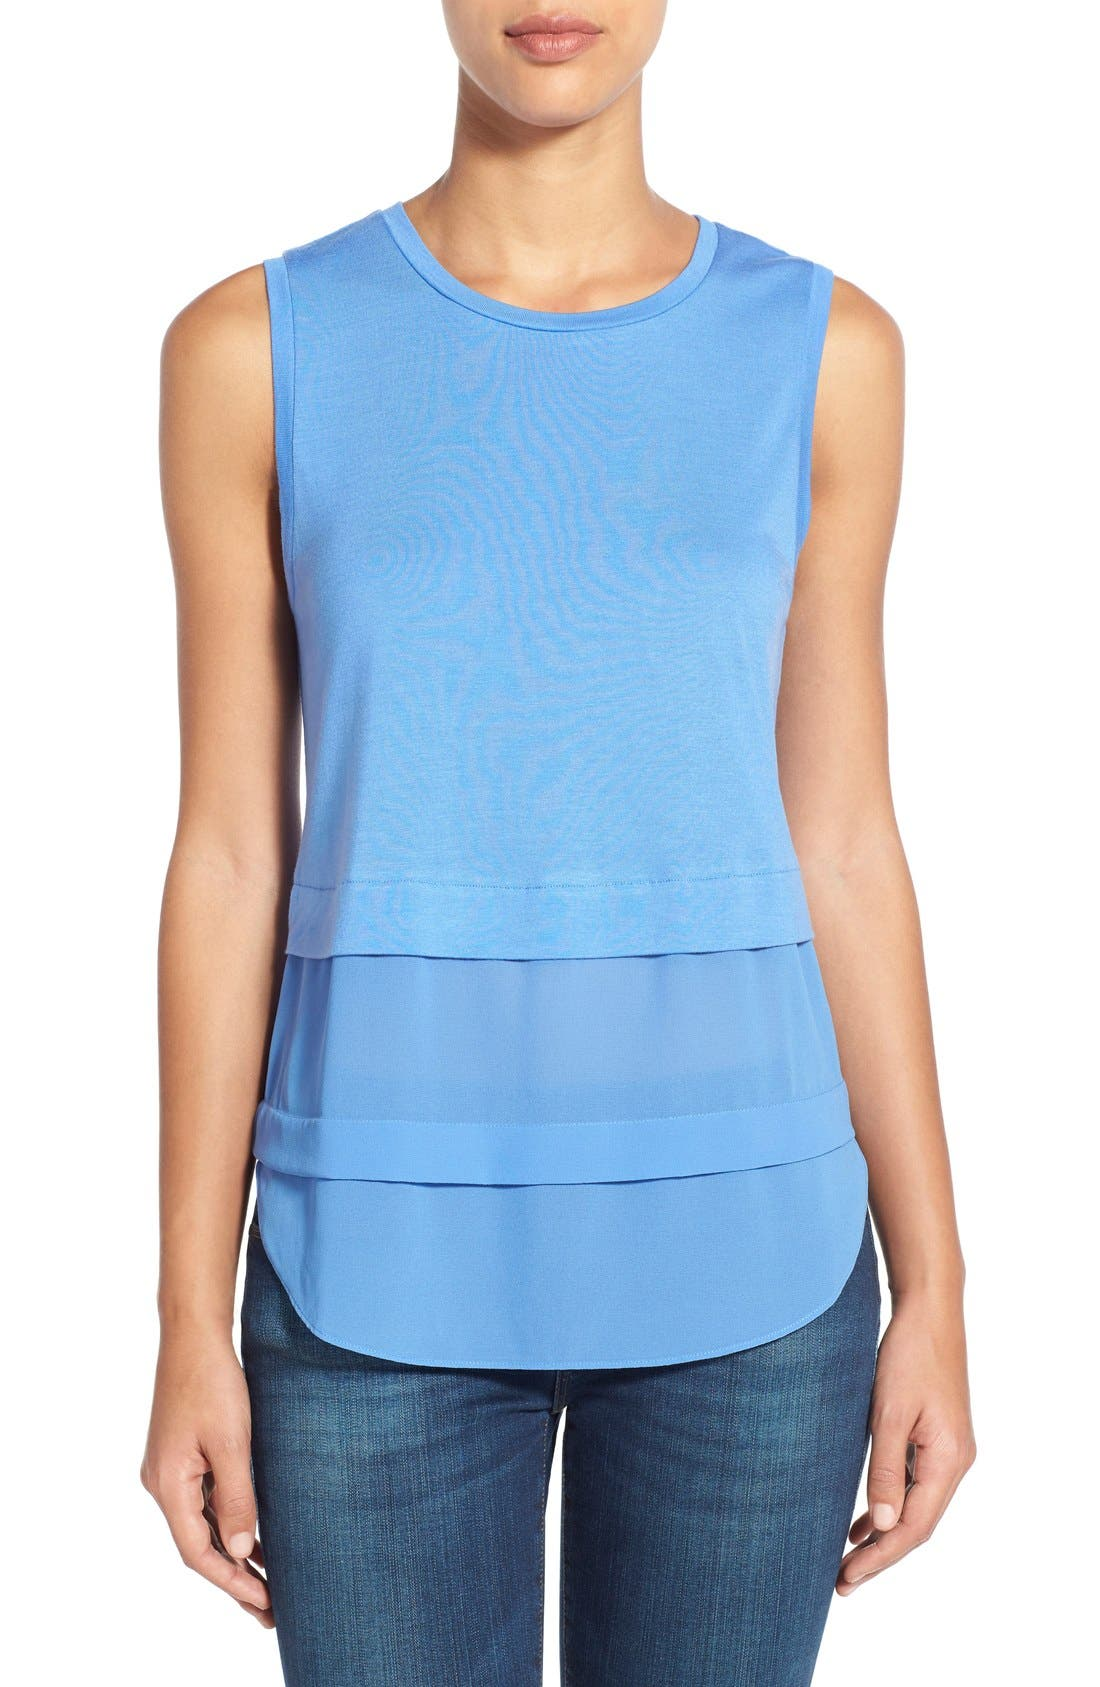 Main Image - MICHAEL Michael Kors Mixed Media Sleeveless Top (Regular & Petite)